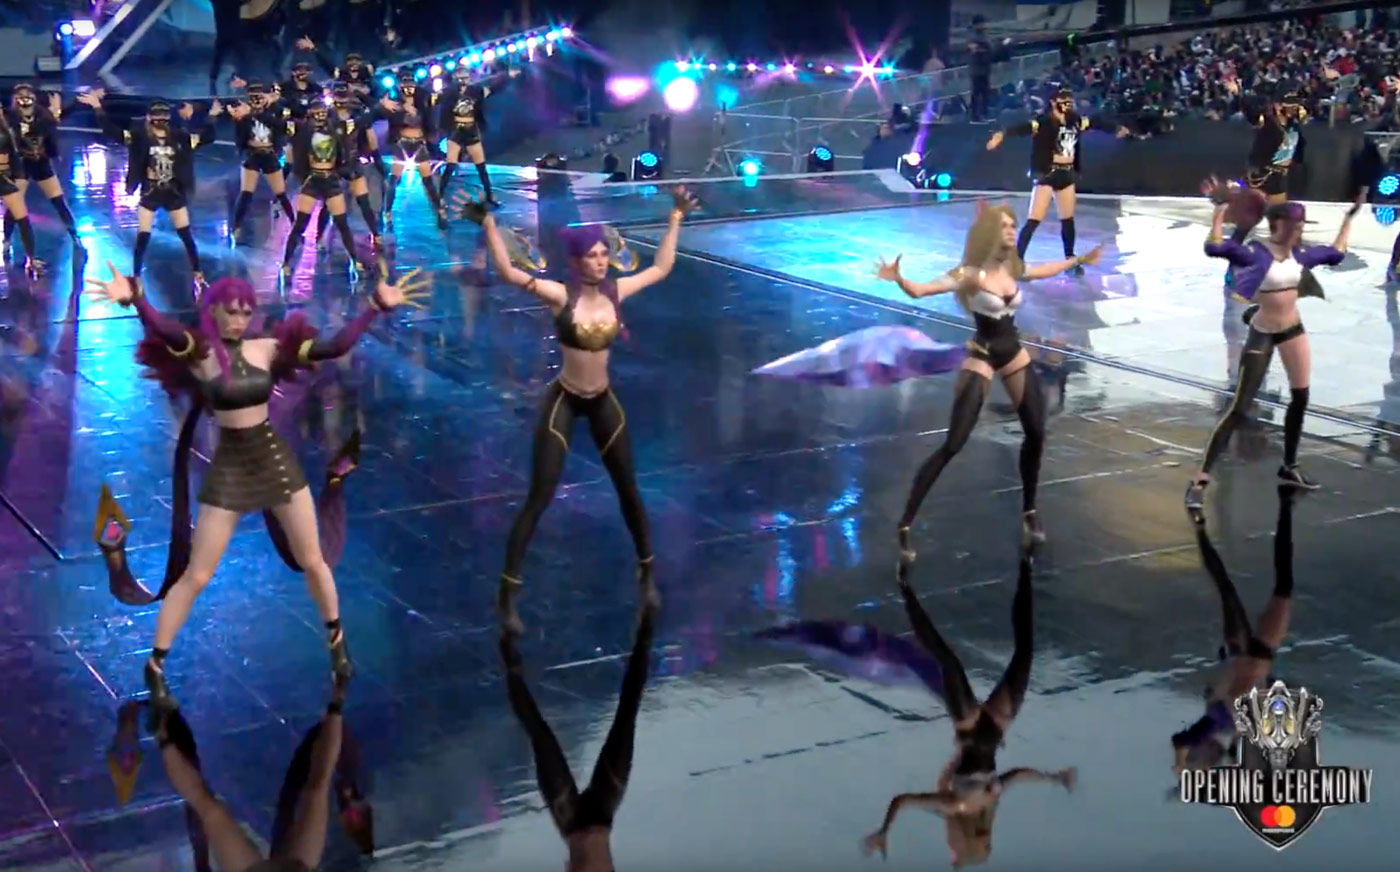 real and holographic dancers perform together at the League of Legends championship in Incheon, South Korea